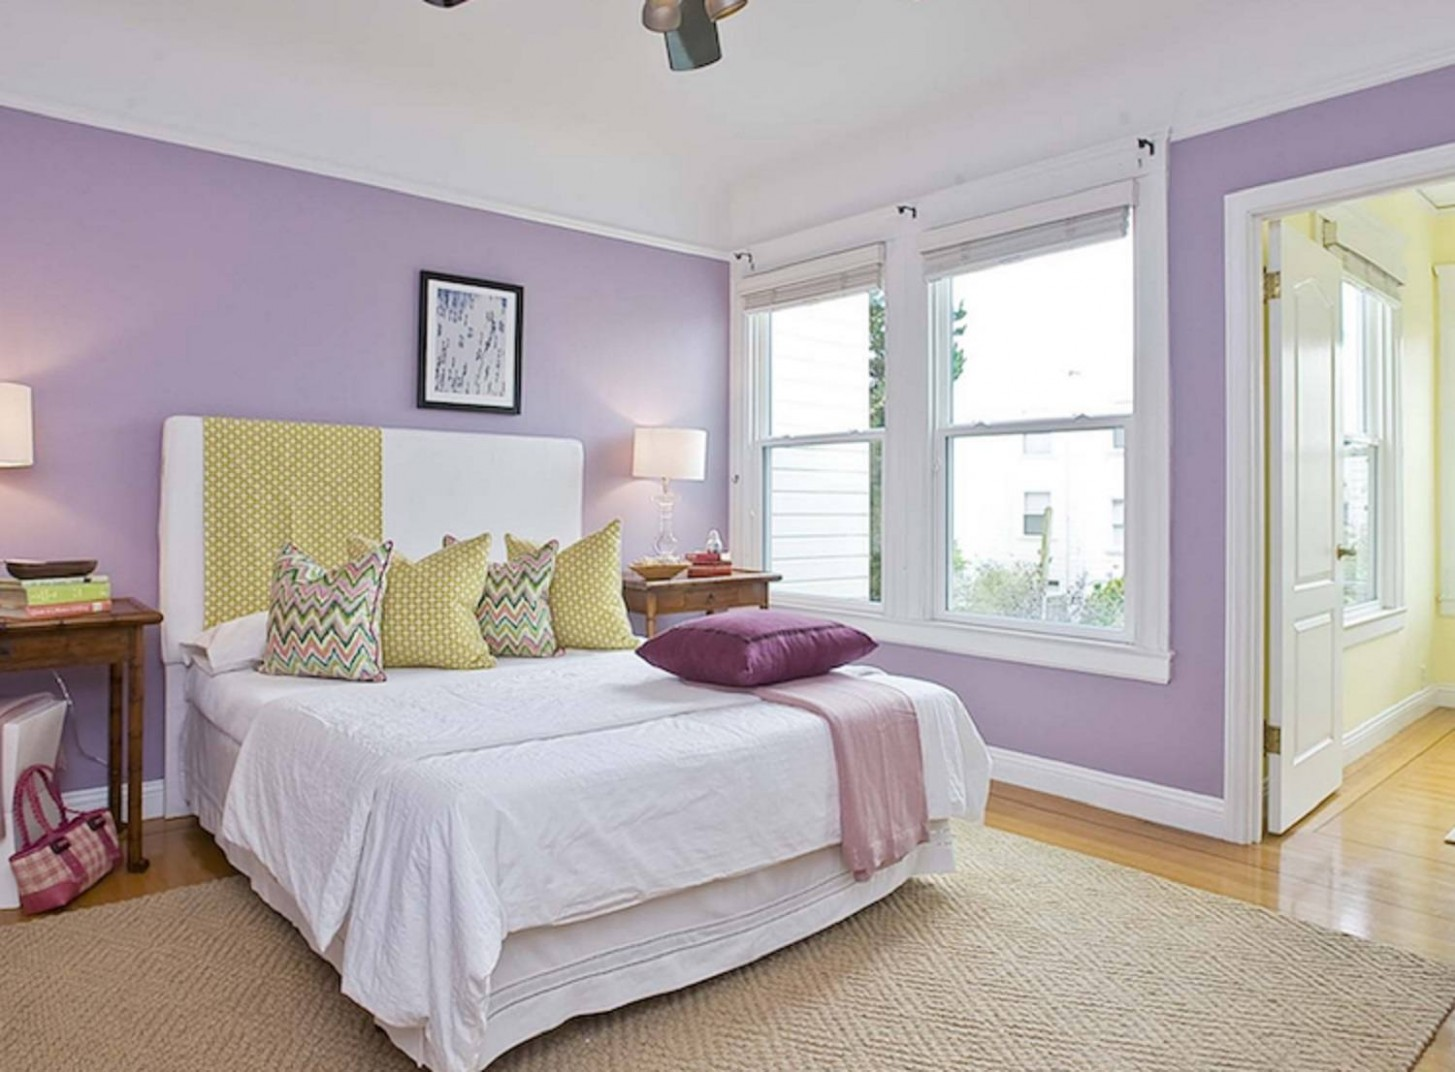 Tips and Photos for Decorating the Bedroom With Lavender - Bedroom Ideas Lavender